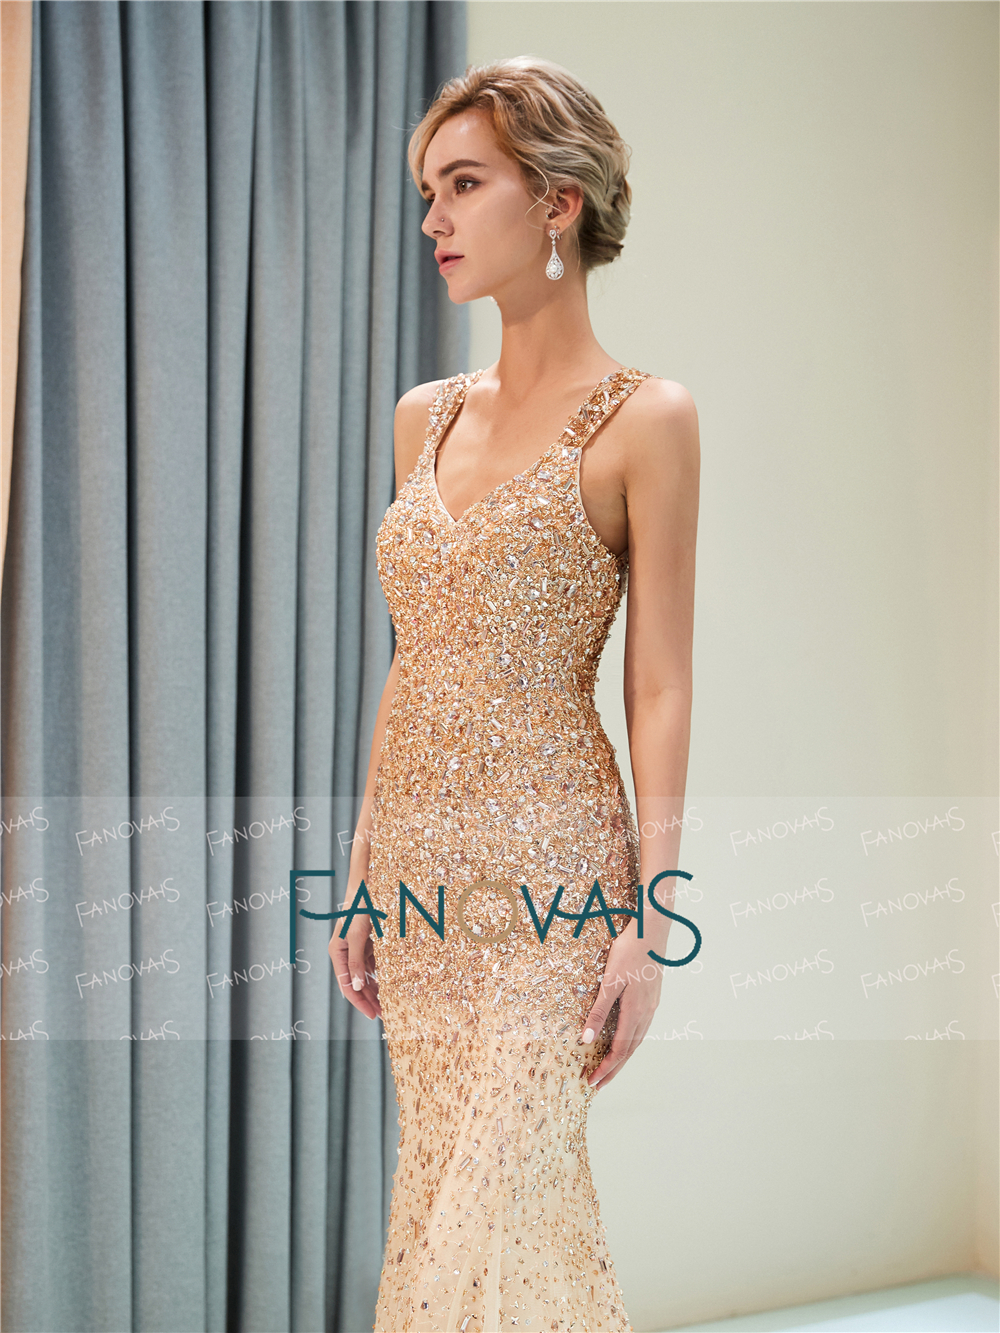 704e3a5d1217 Sexy Champagne Mermaid Evening Dresses Long V Neck Beaded Prom Dresses 2019  Tassels Evening Gown Vestido de Fiesta QS2-in Evening Dresses from Weddings  ...